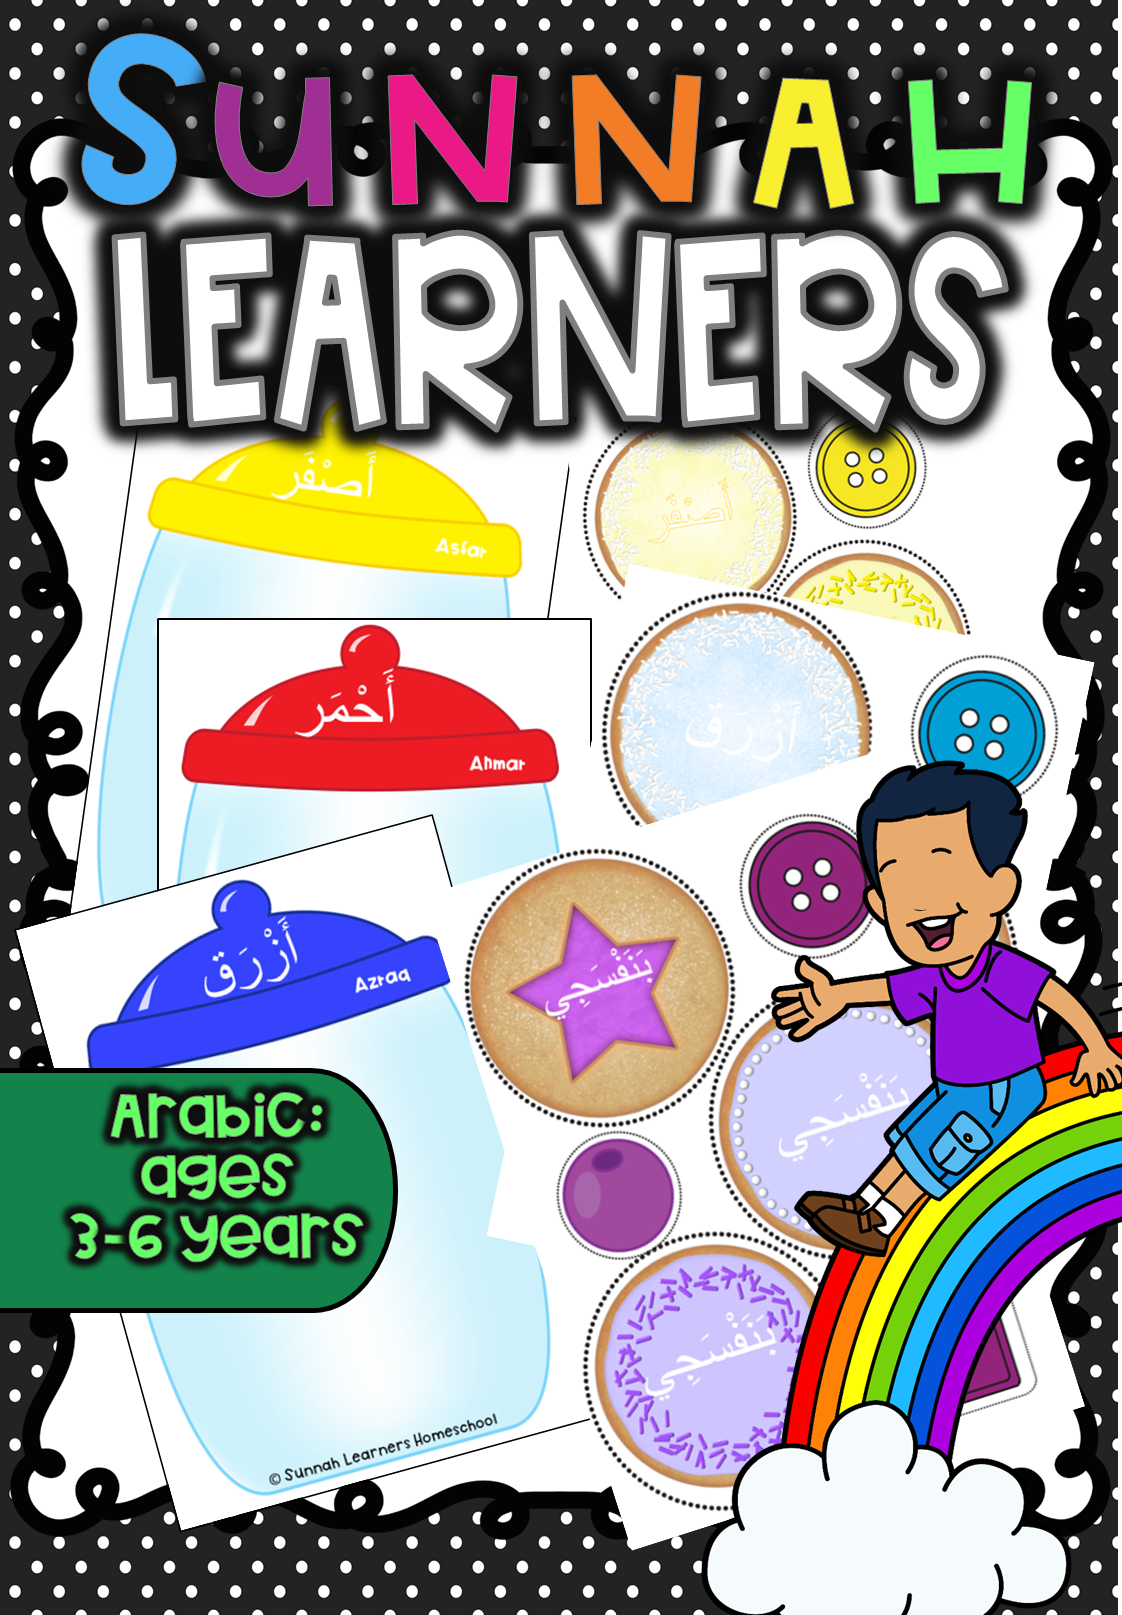 Cookie Jar Colors Arabic Sunnah Learners